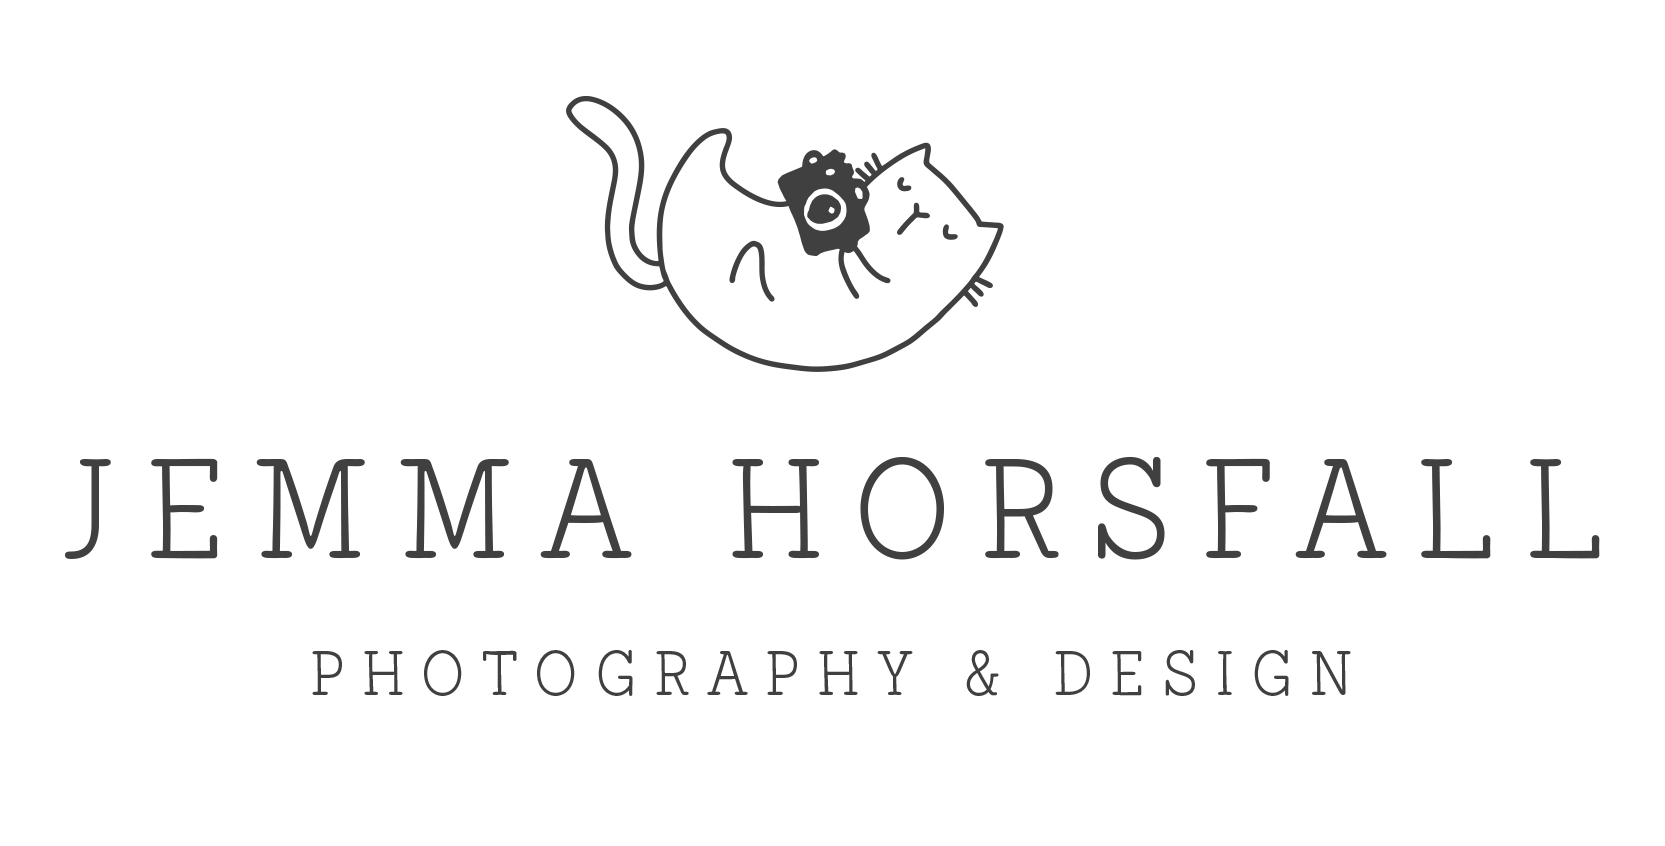 Jemma Horsfall | Photography & Design